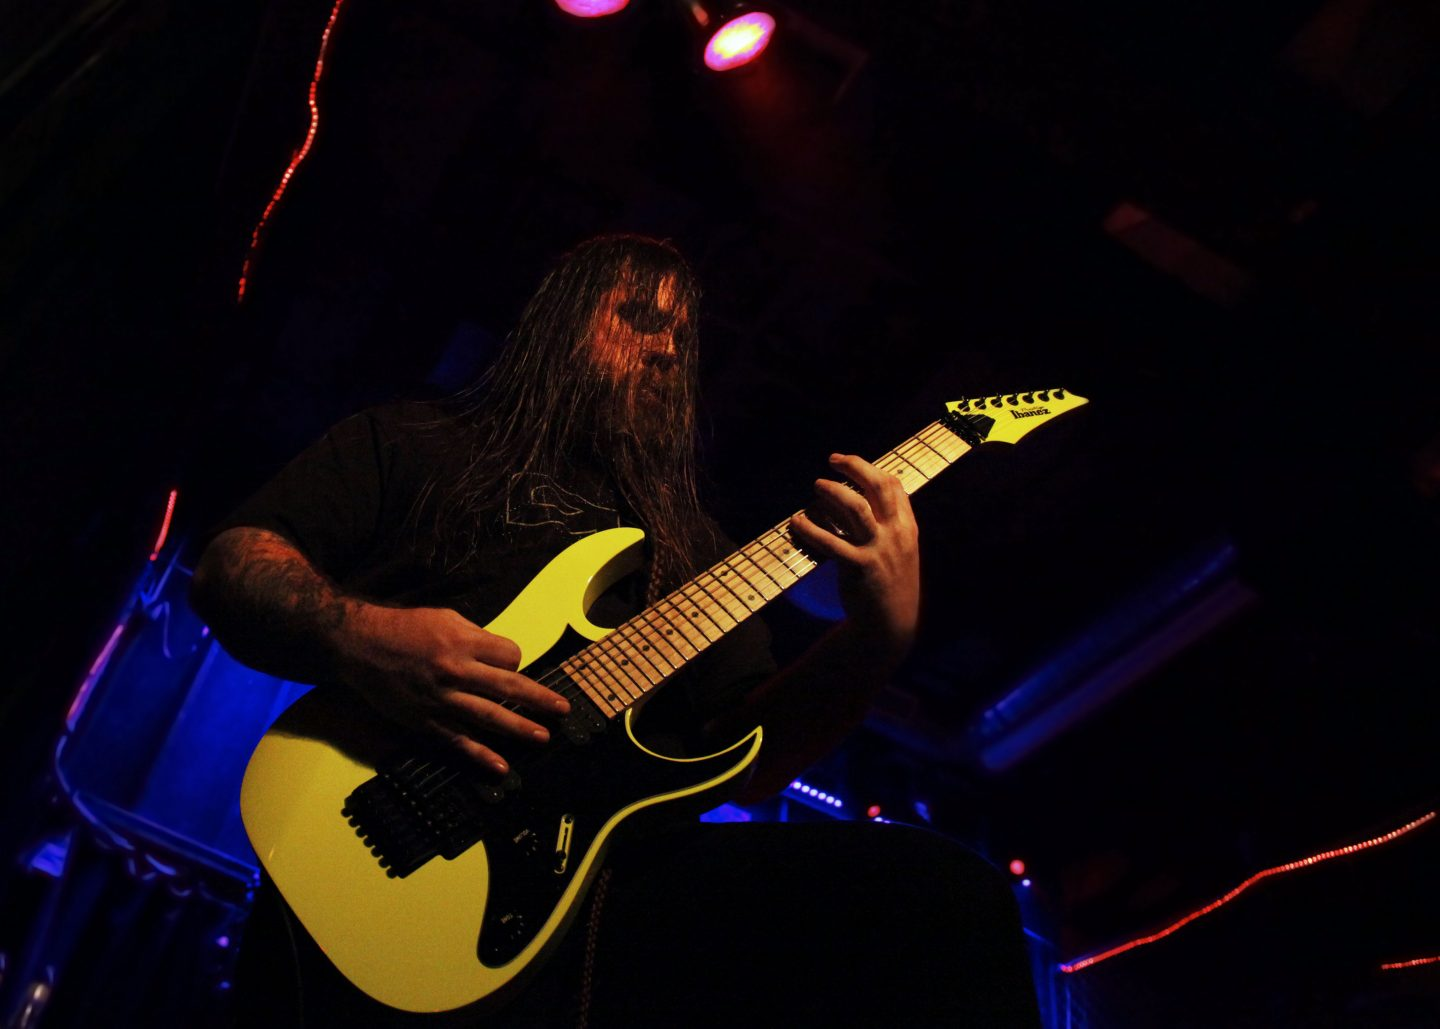 Fit For An Autopsy at Reggie's Rock Club by Sanchi Engineer